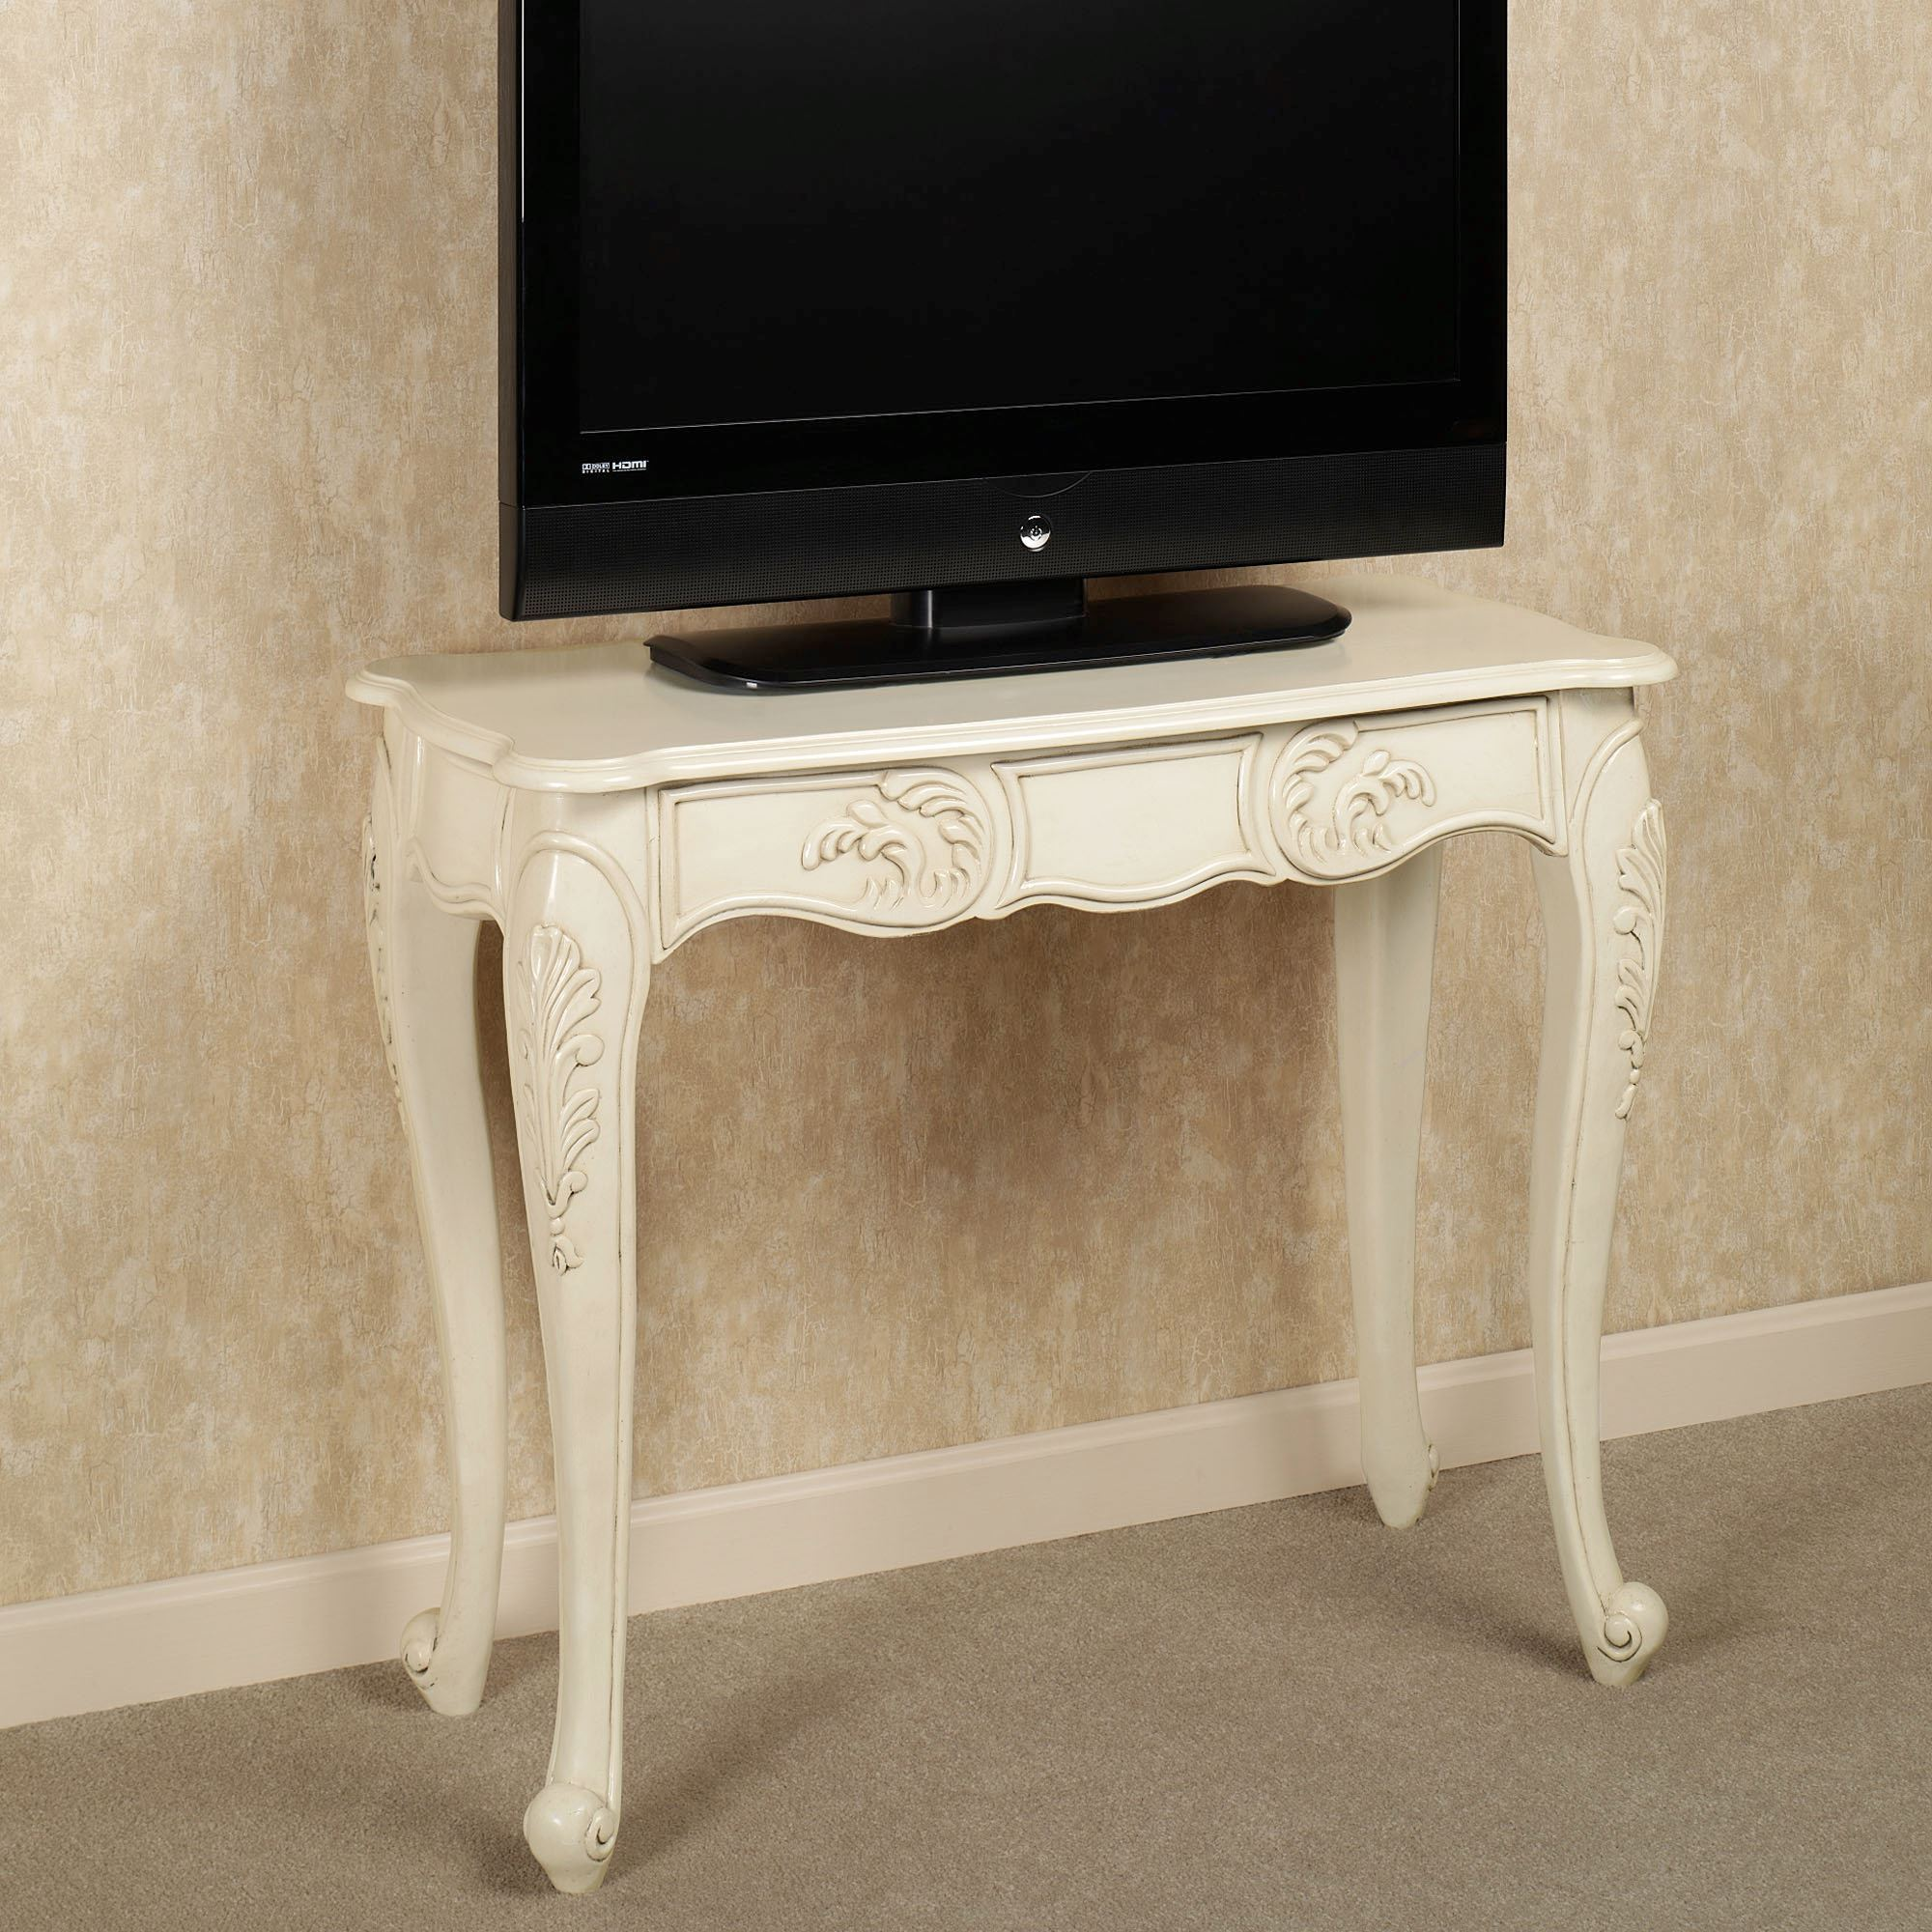 Florio wooden console table florio console table geotapseo Gallery